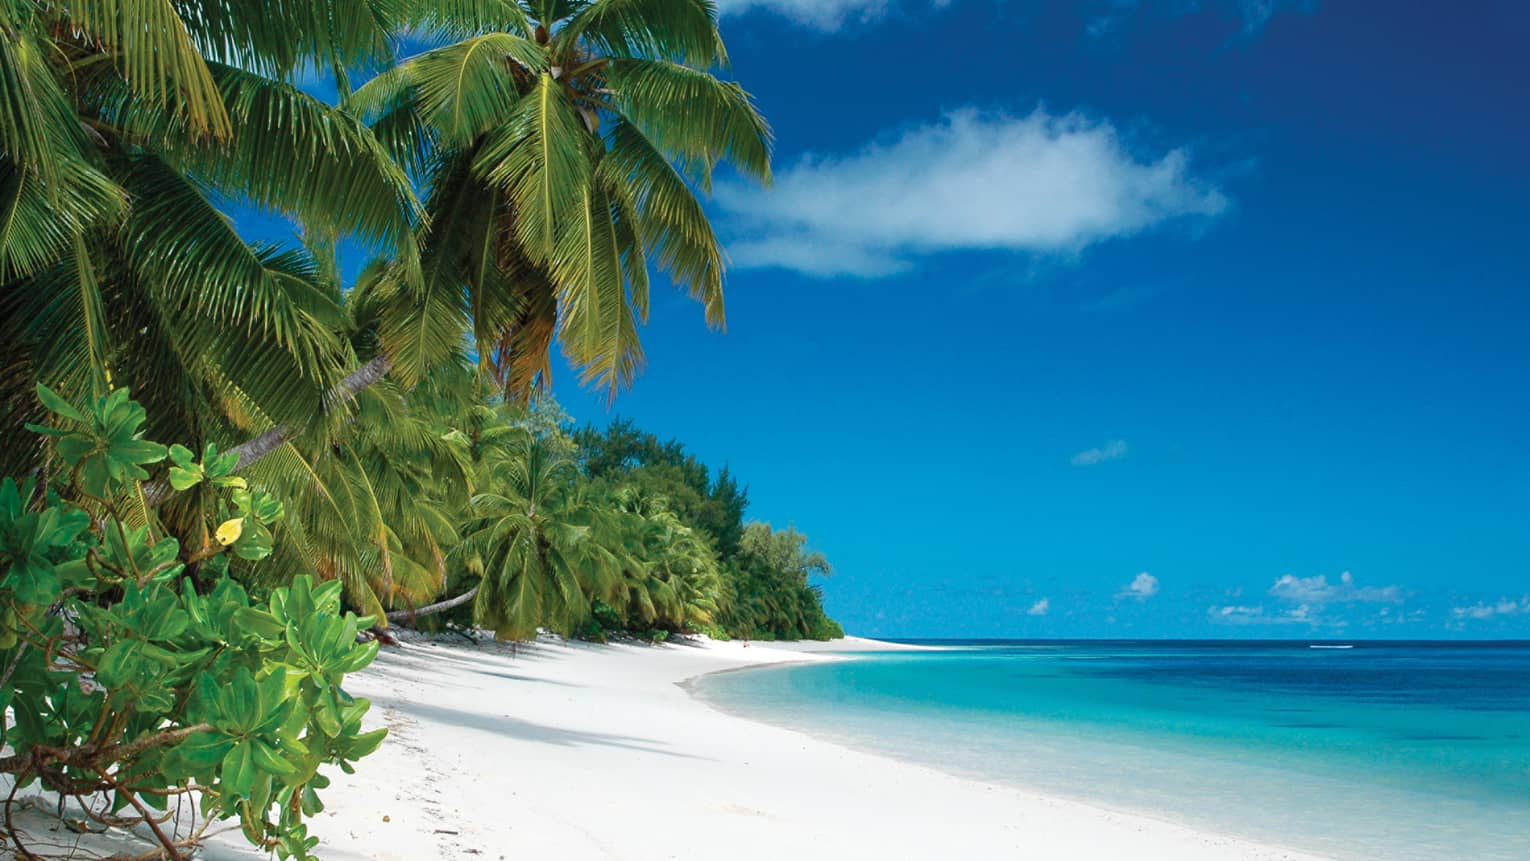 Green  tropical plants and large palms over white sand beach, bright blue ocean